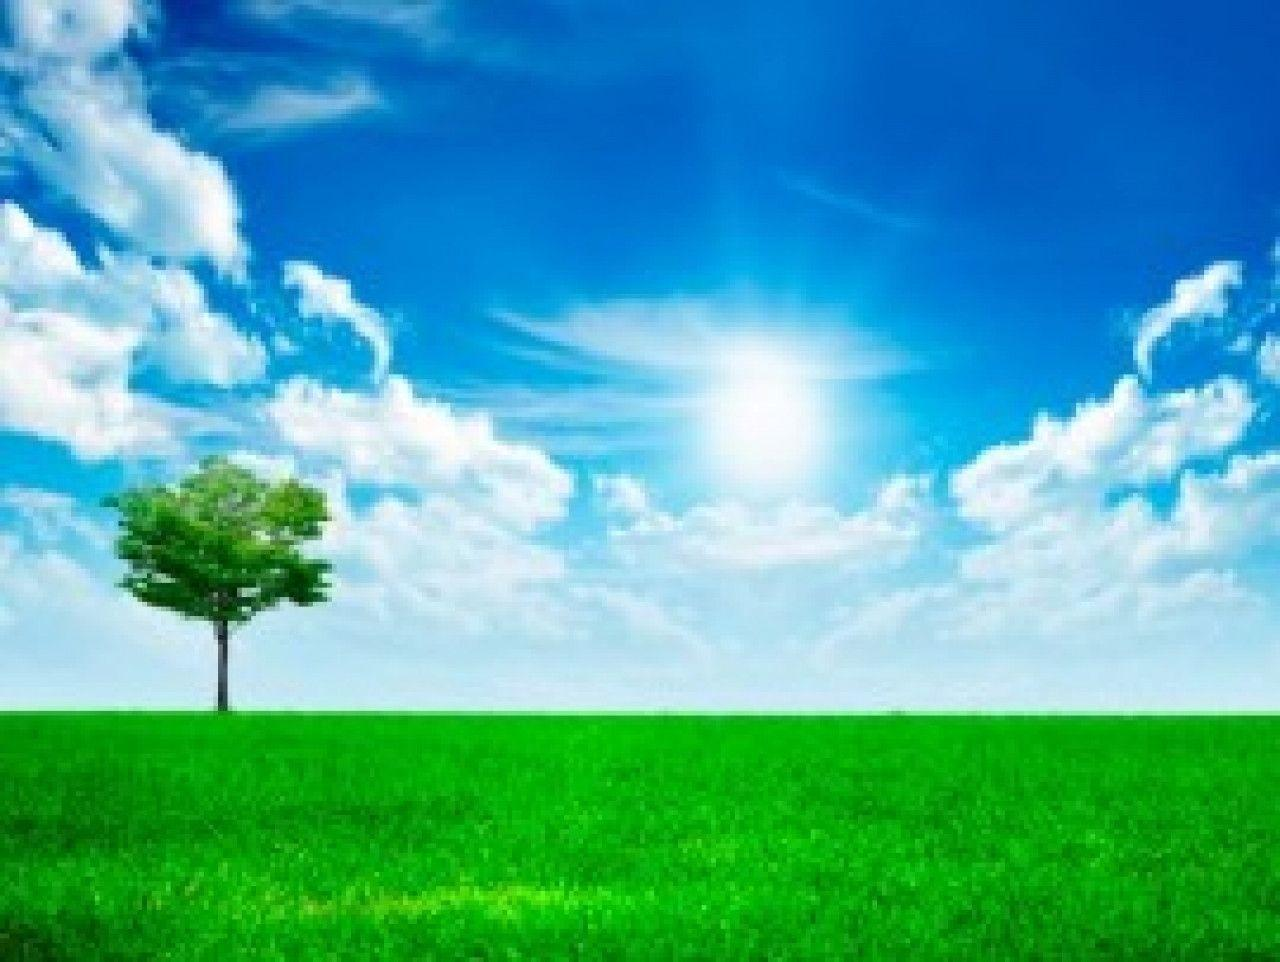 Nature Wallpaper Desktop Full Size Hq Images 12 HD Wallpapers ...